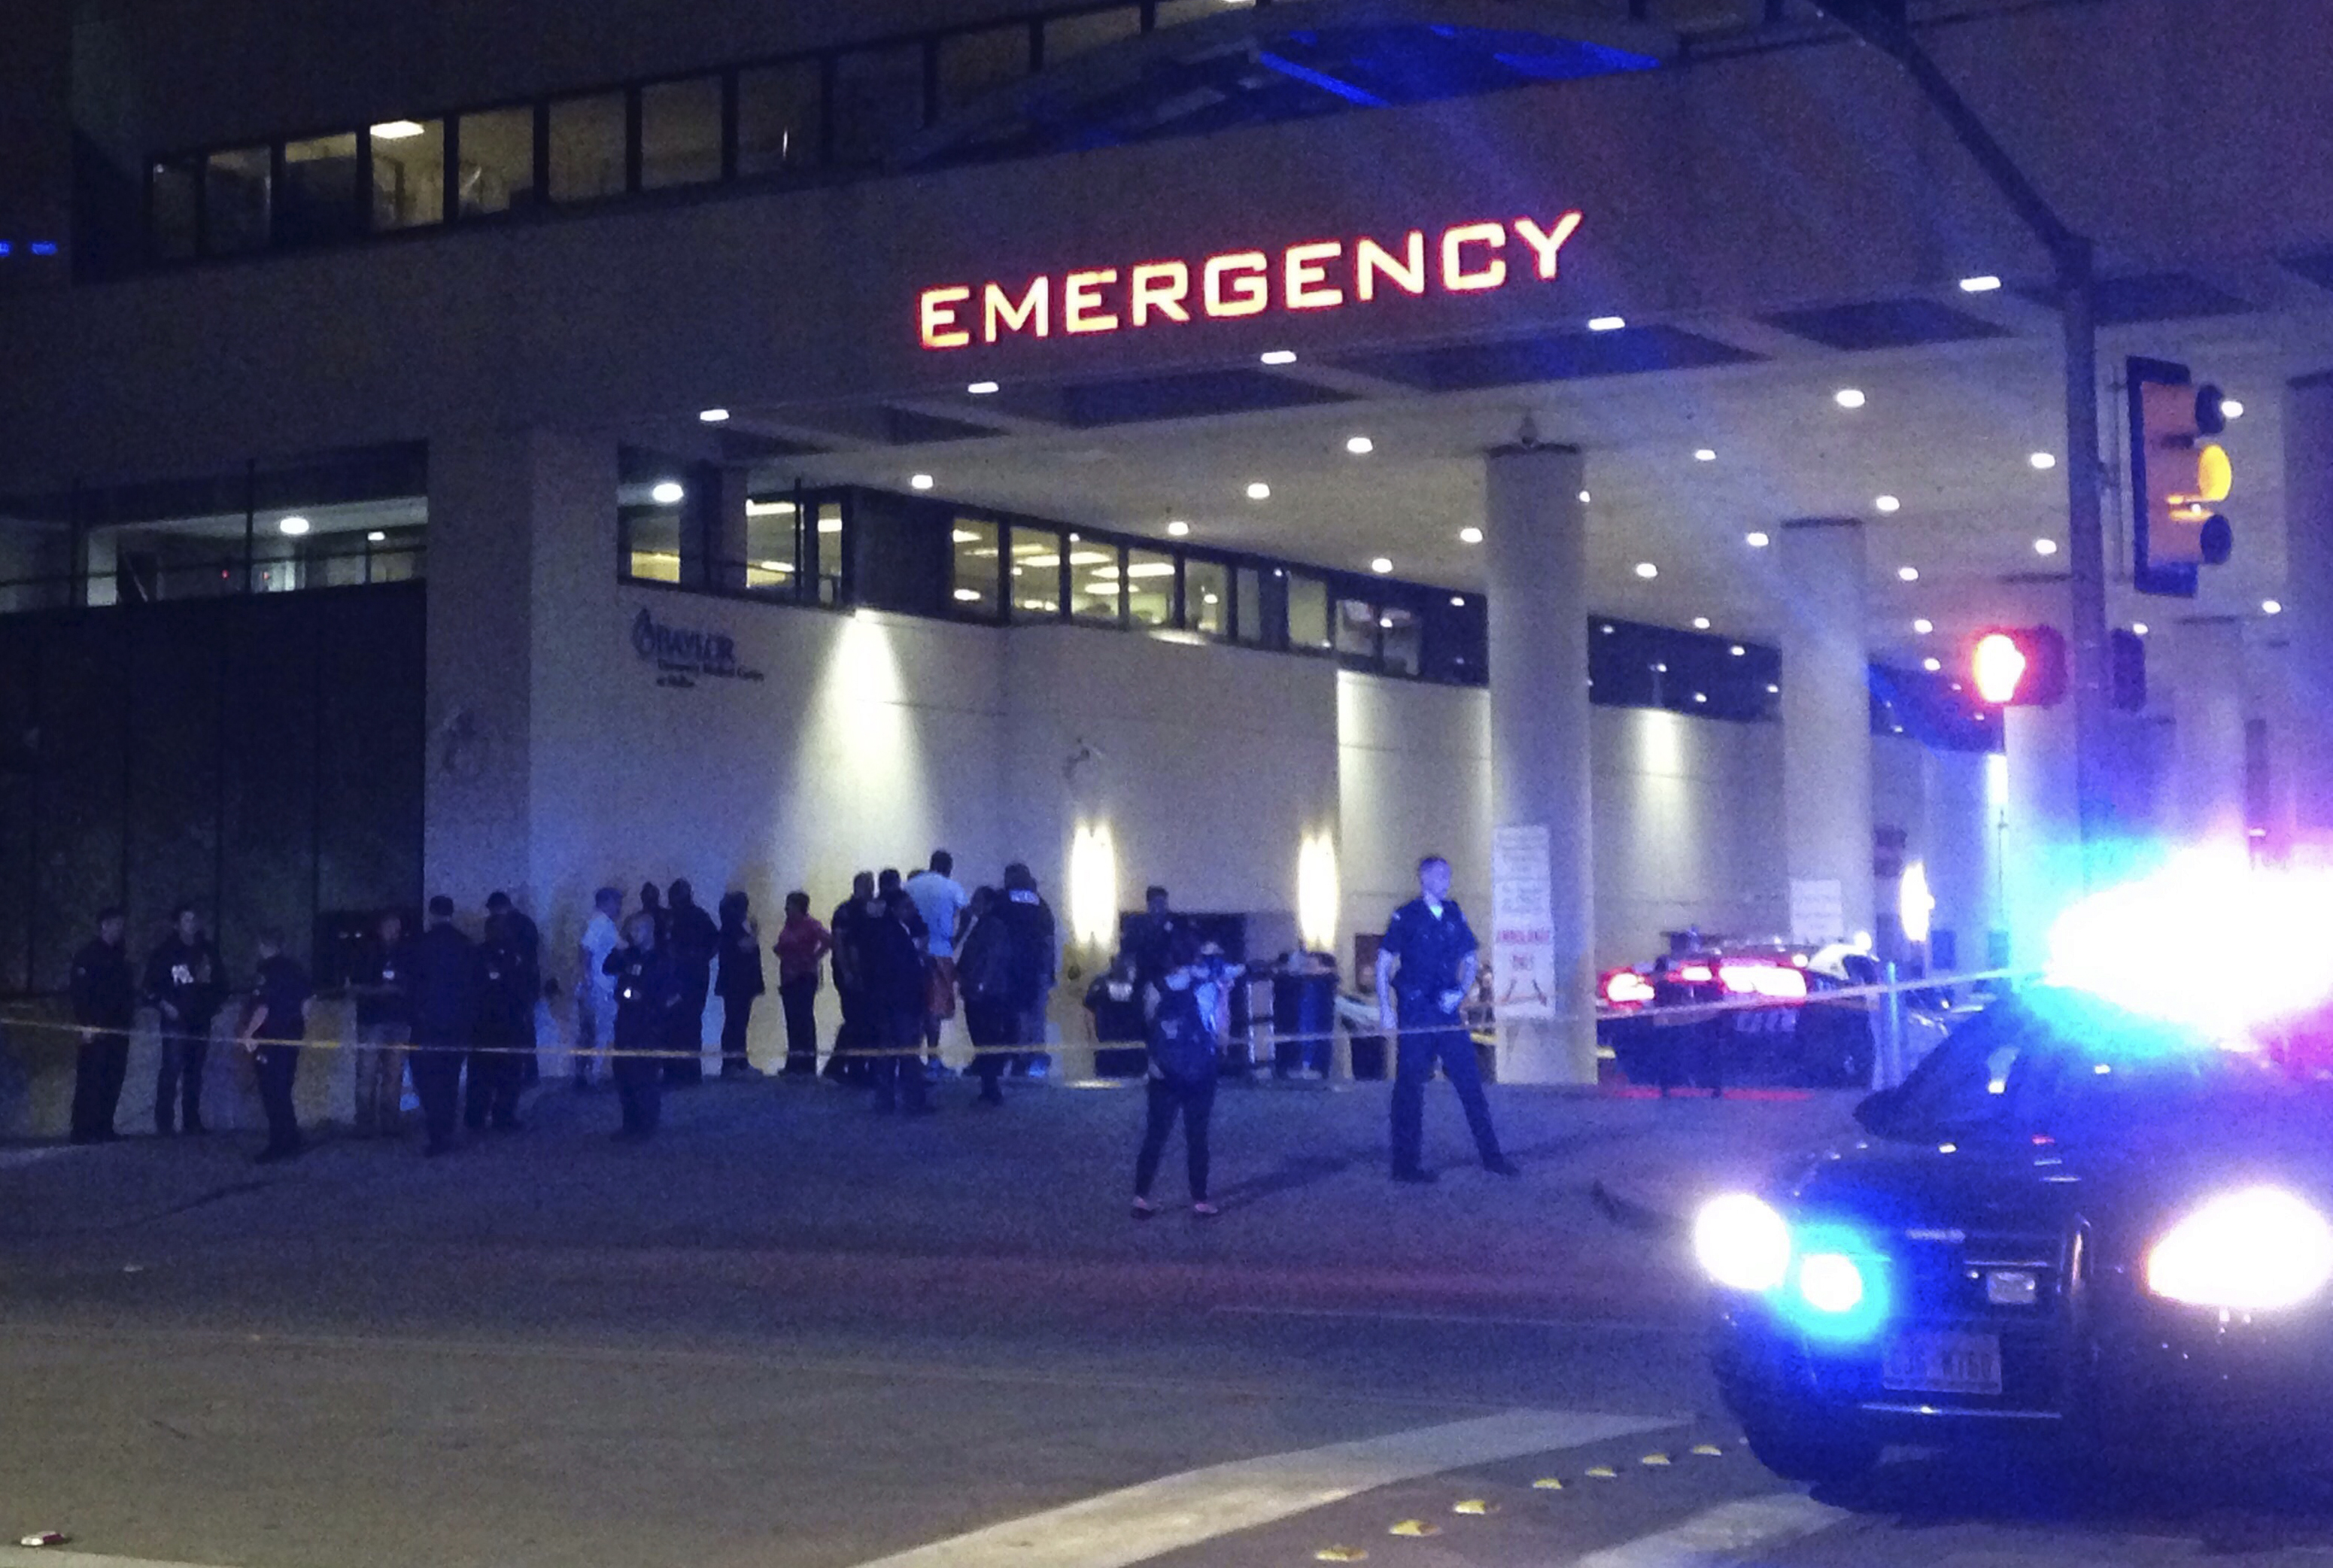 Police and others gather at the emergency entrance to Baylor Medical Center in Dallas, where several police officers were taken after shootings Thursday, July 7, 2016.. (AP Photo/Emily Schmall)